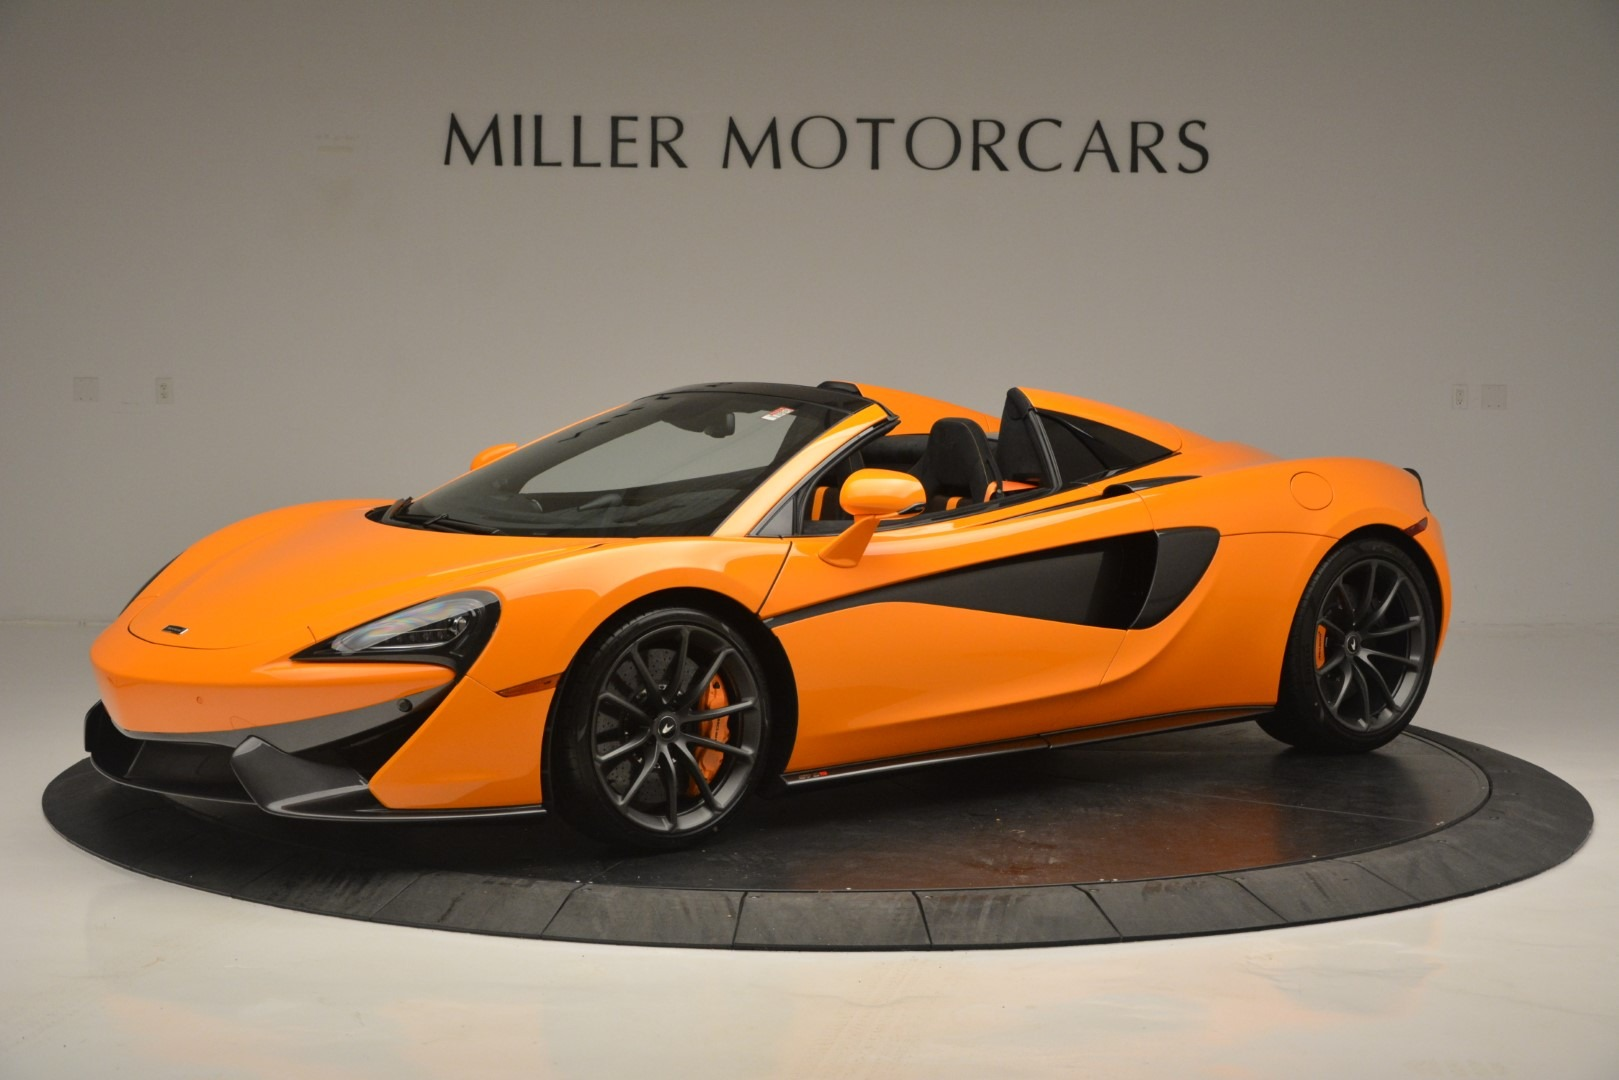 Used 2019 McLaren 570S Spider for sale Sold at Pagani of Greenwich in Greenwich CT 06830 1